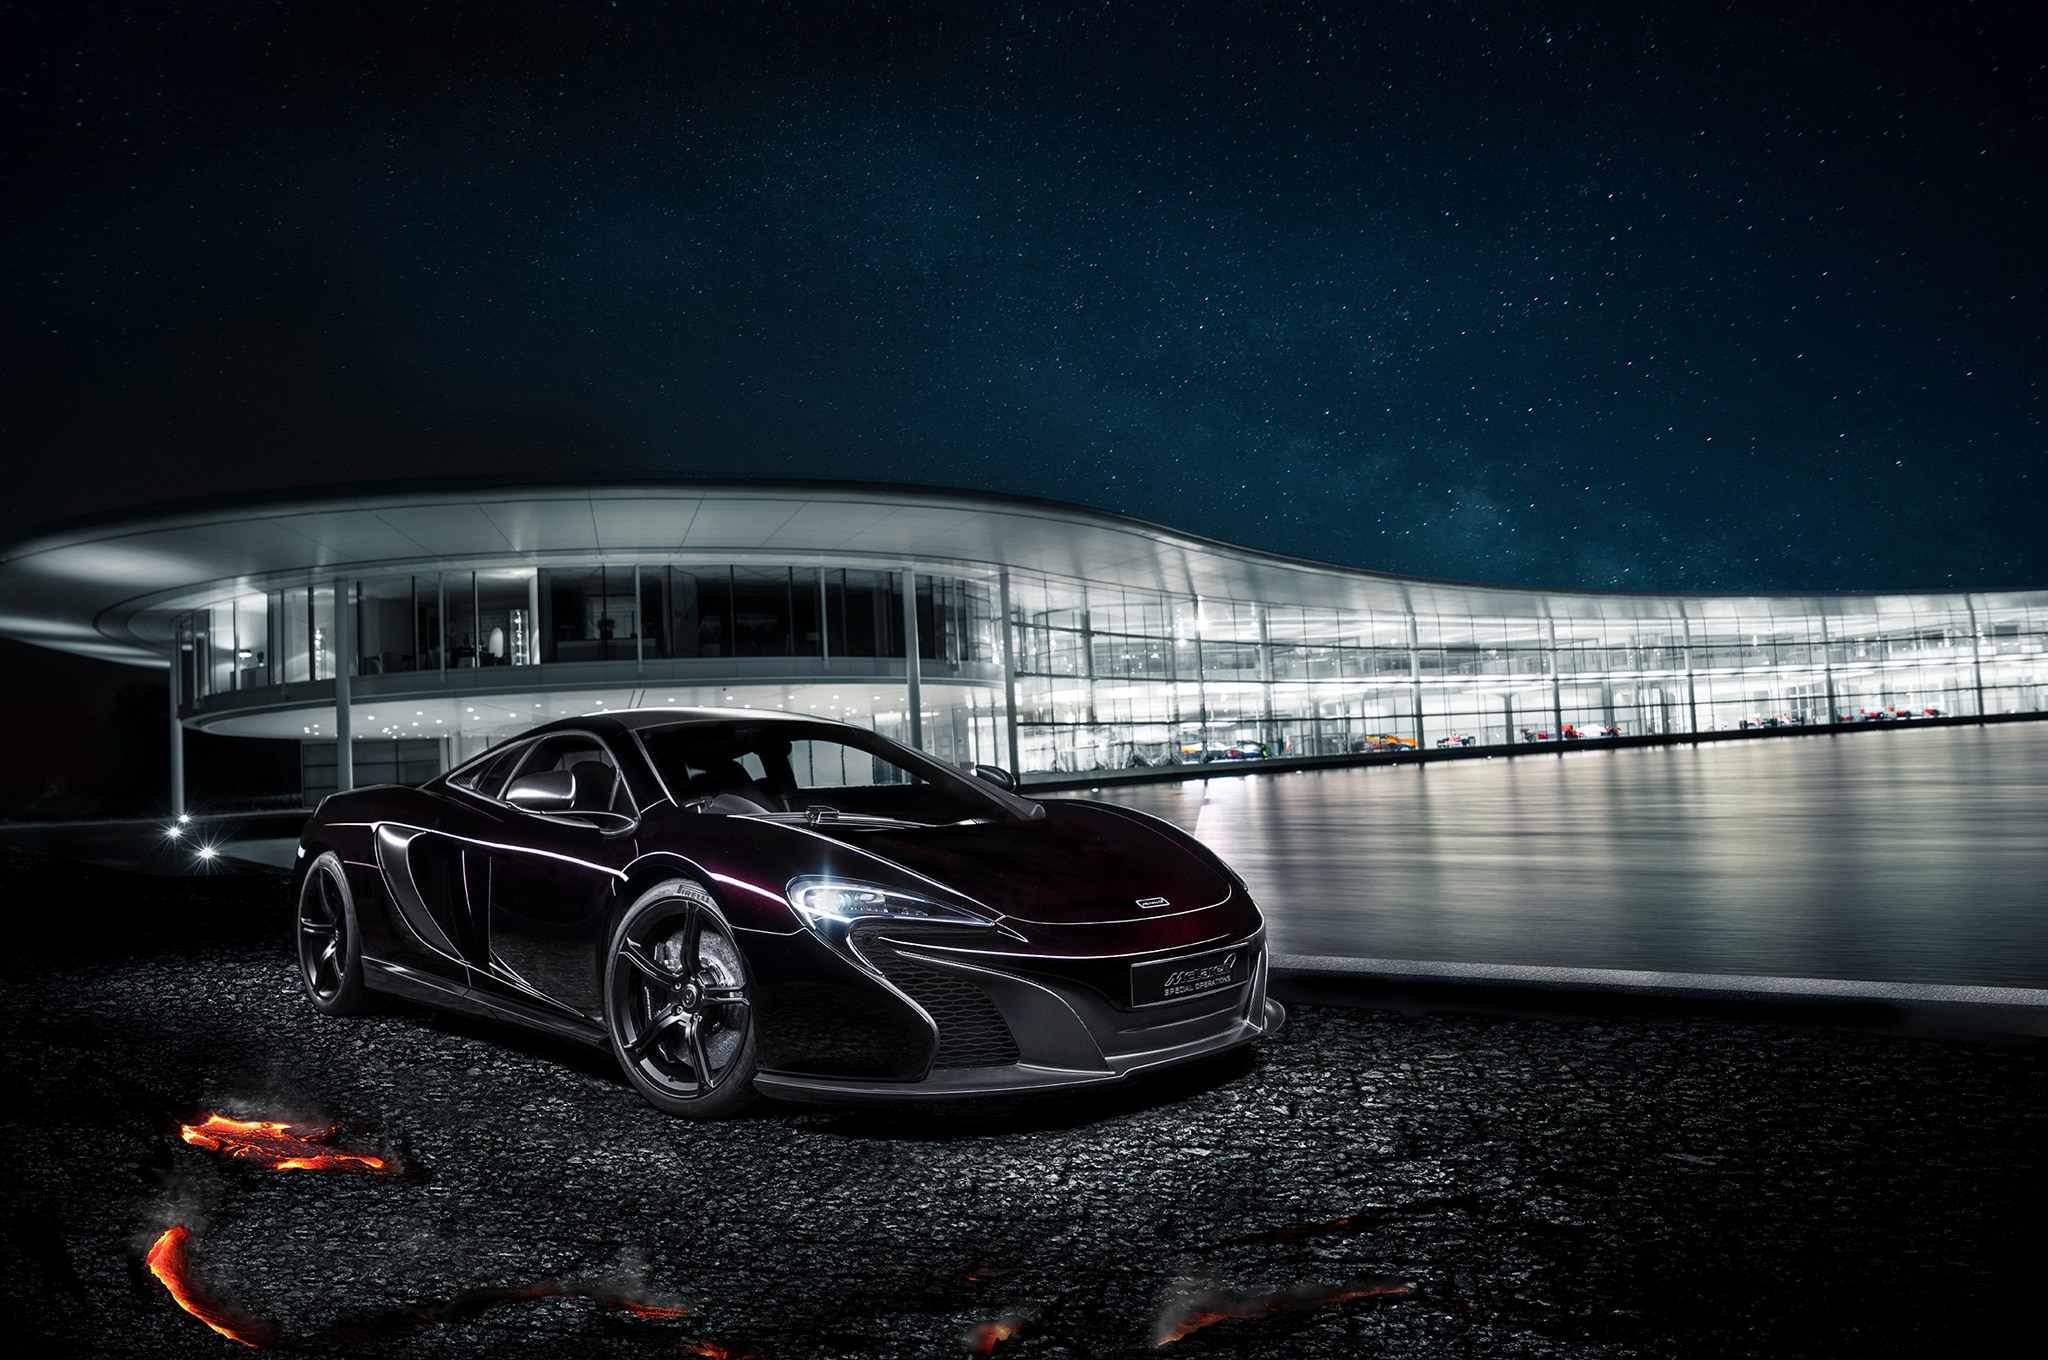 Mclaren Mso 650s Coupe Concept 1 Front Three Quarter1